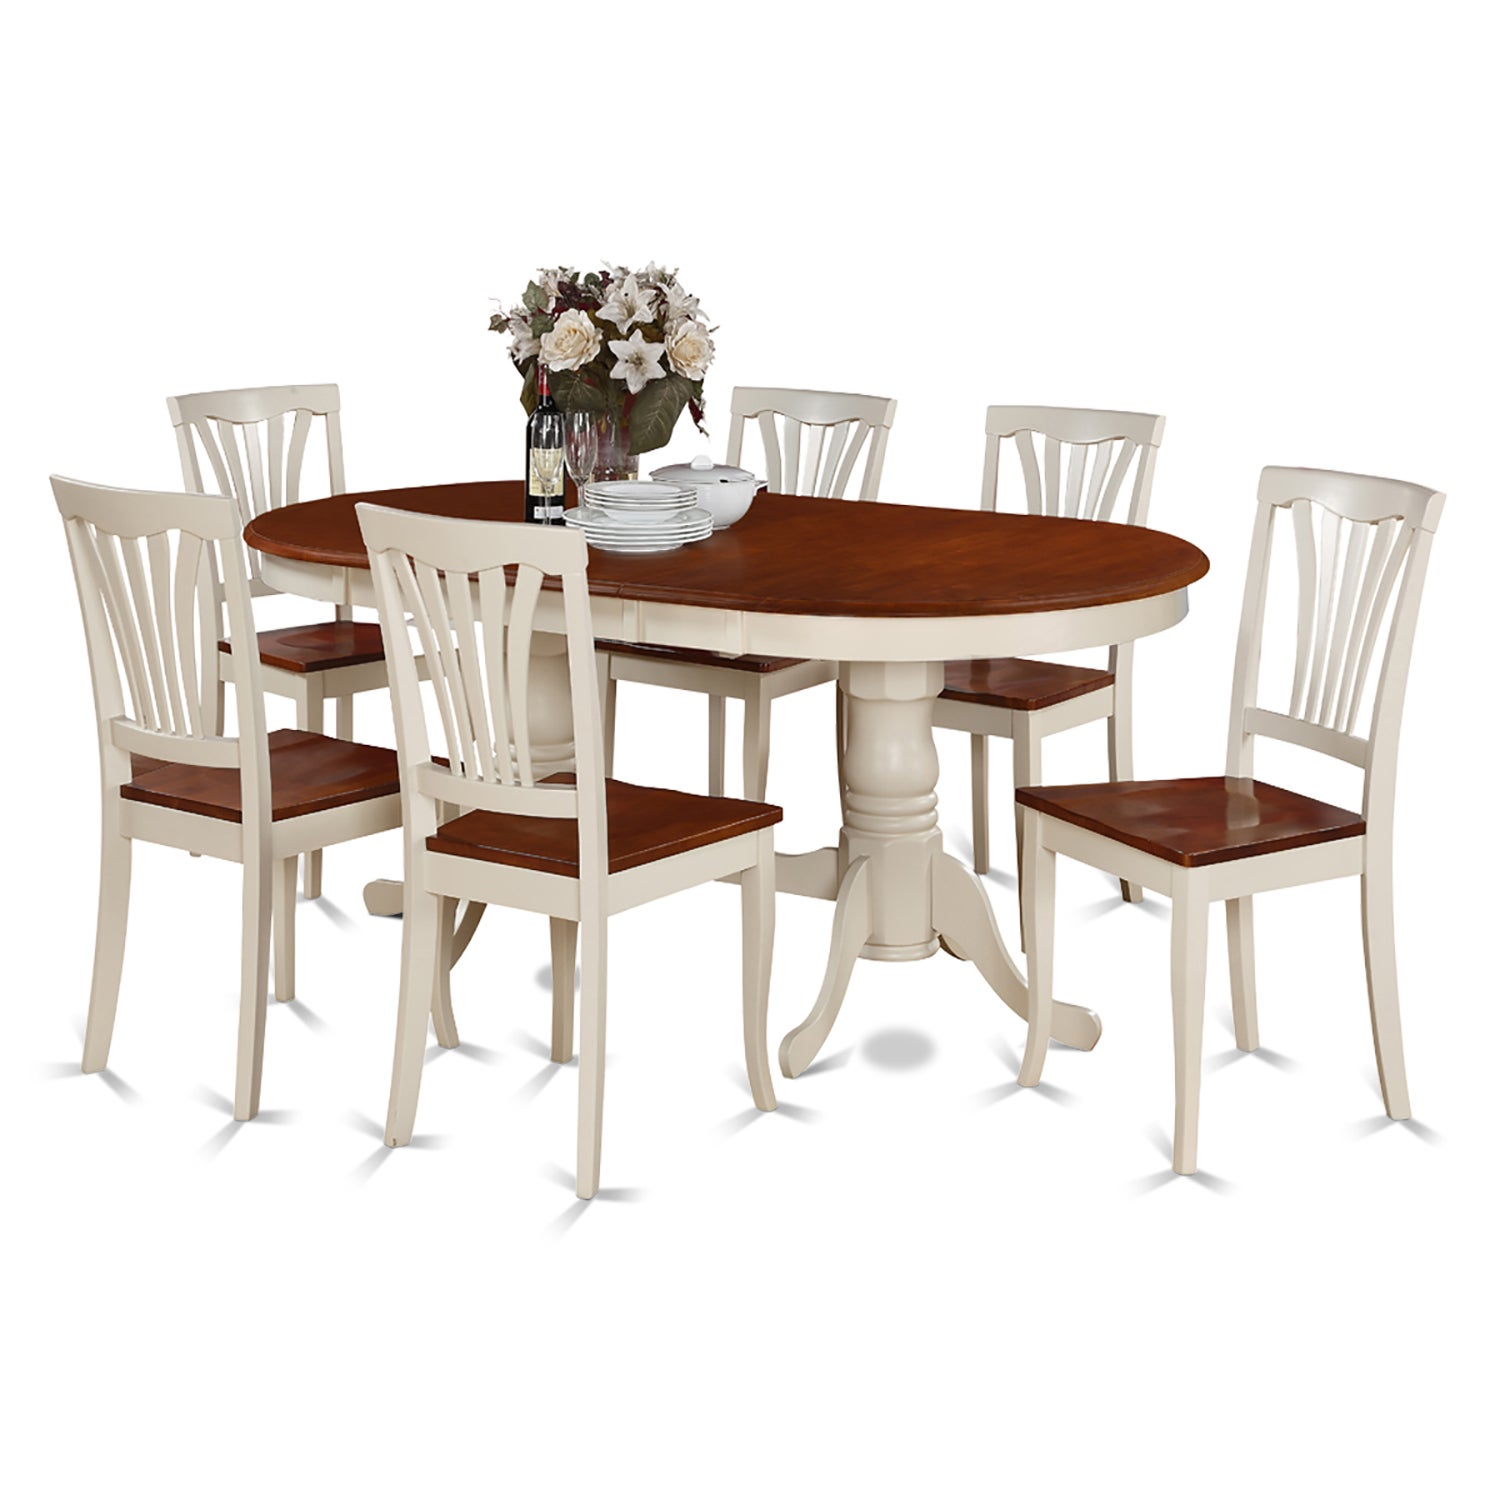 PLAV7-WHI-W Rubberwood 7-piece Dining Room Set (Buttermil...